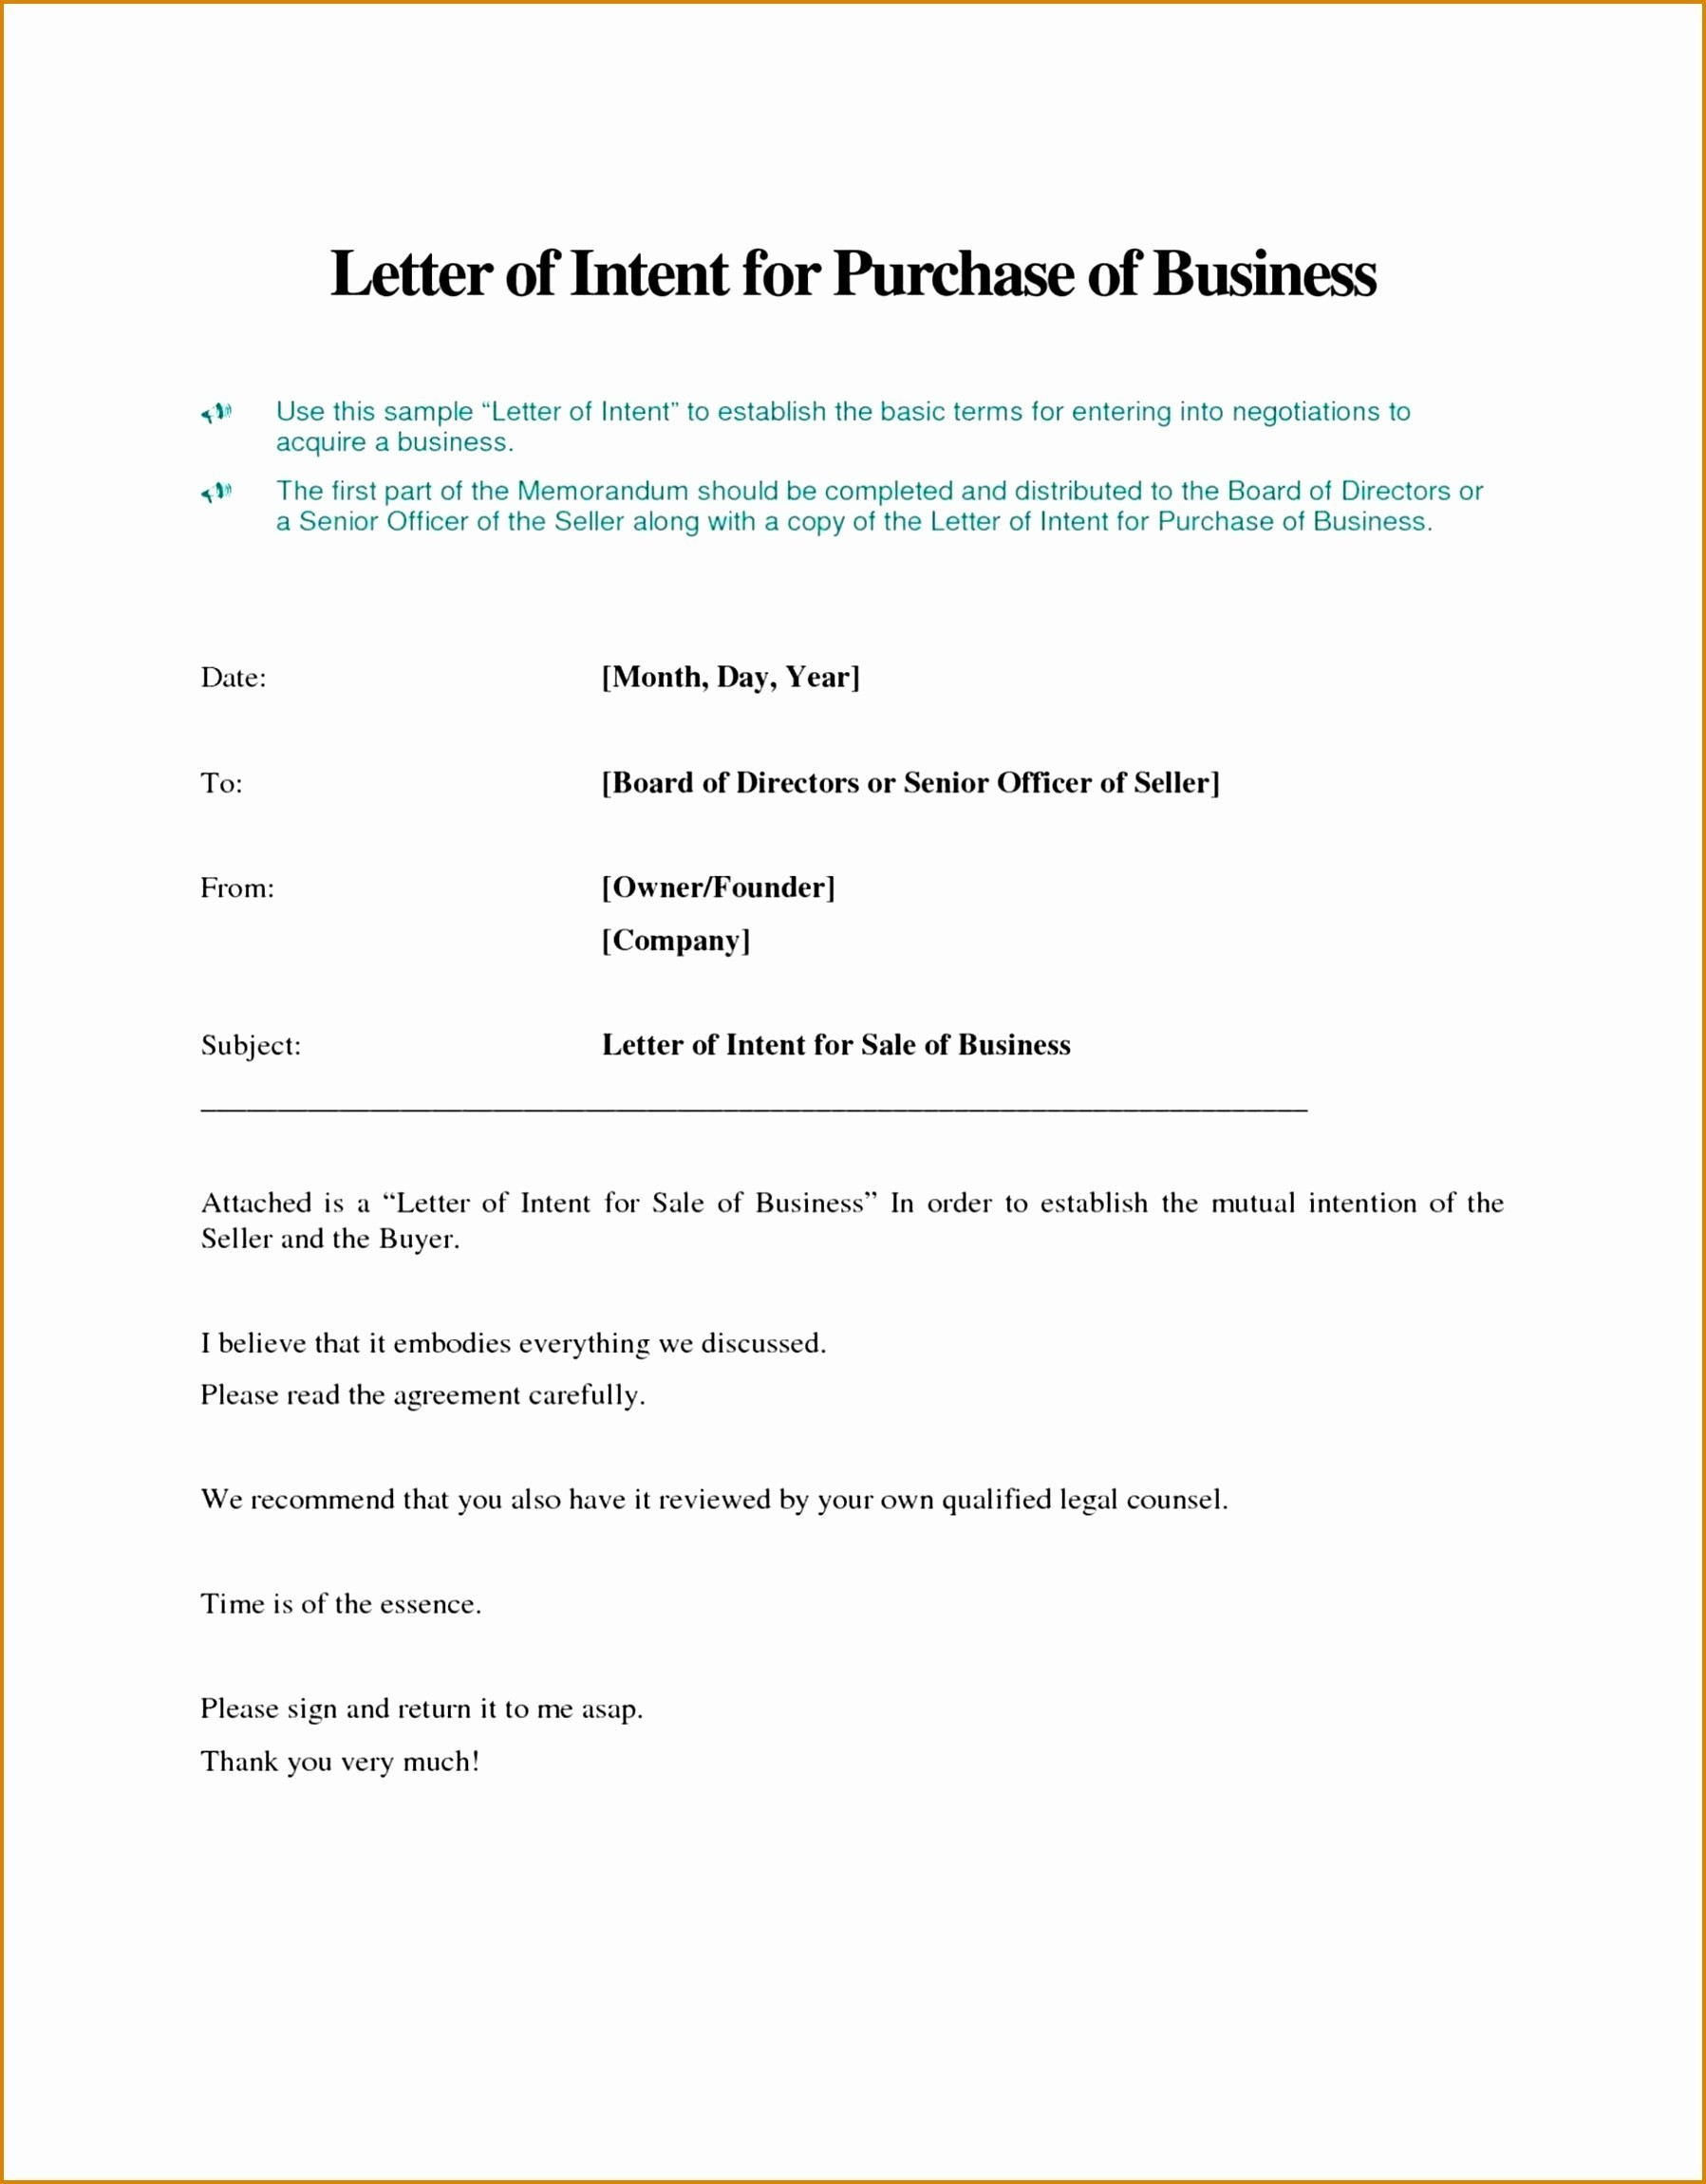 Letter of intent to sell a business template examples letter templates letter of intent to sell a business template letter intent to do business template best accmission Image collections